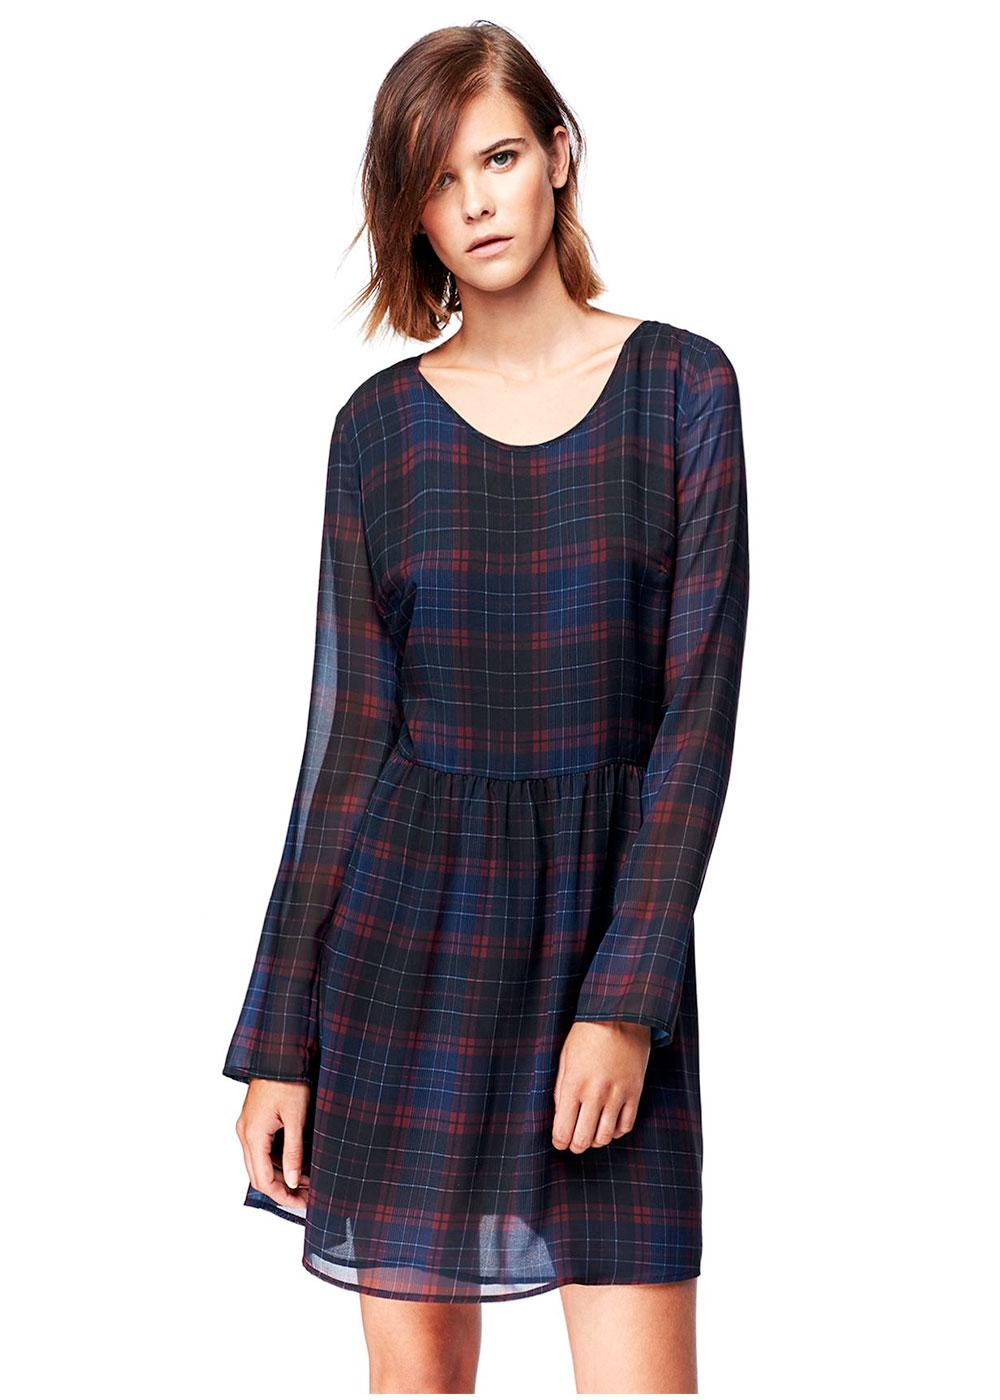 Bloom PEPE JEANS Retro 60s Tartan Check Dress